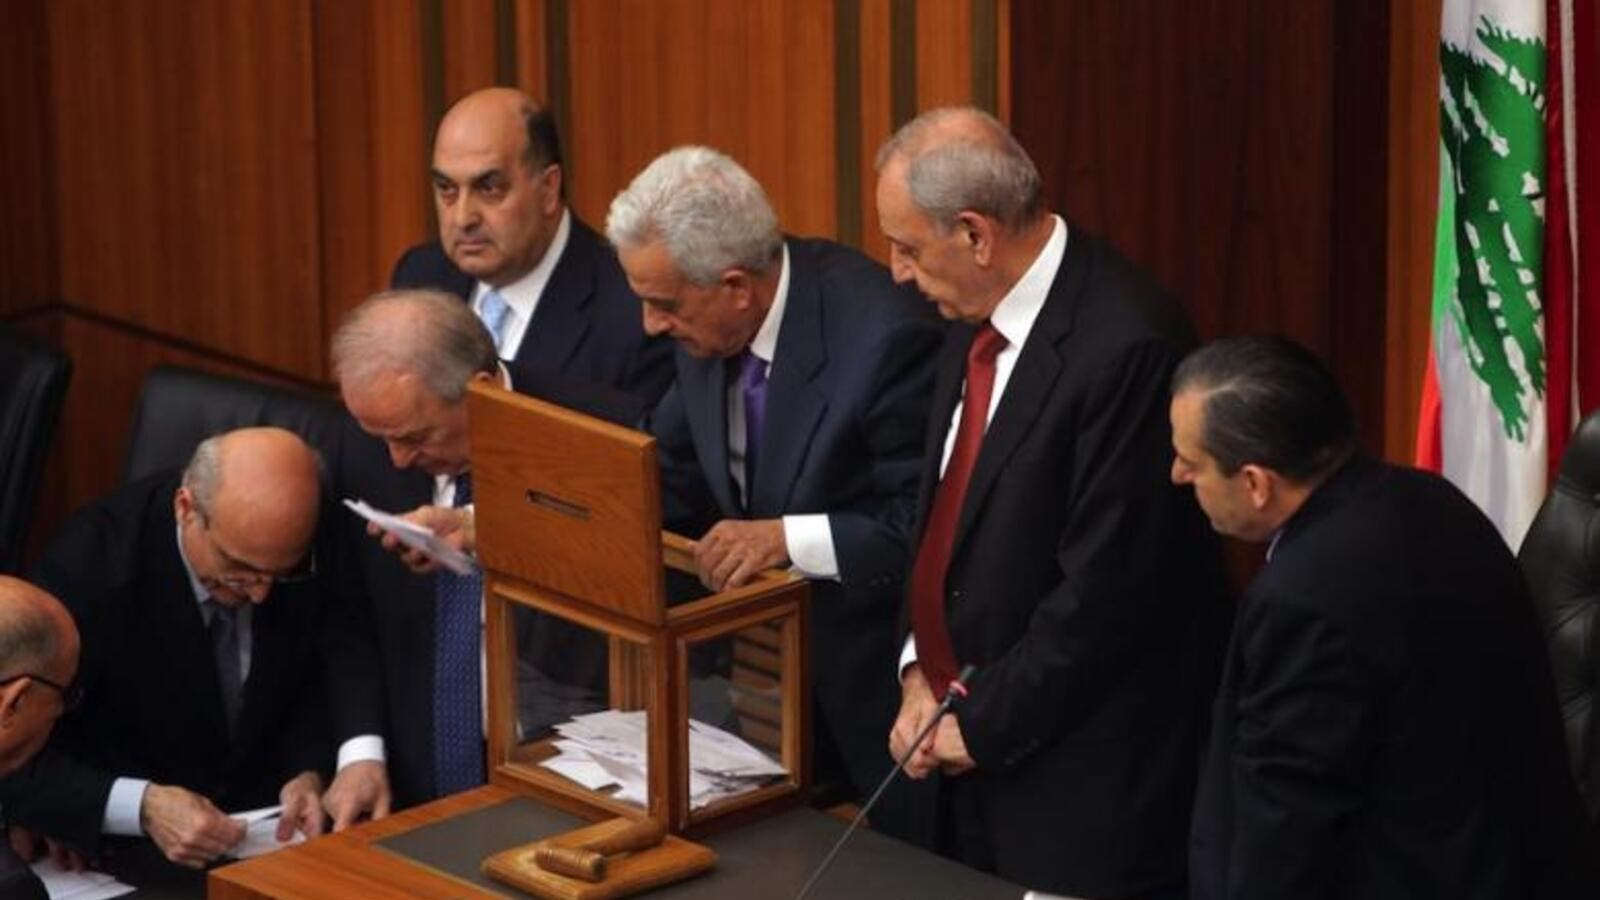 Lebanese members of parliament count the votes after casting their ballots to elect the new Lebanese president in the parliament building in downtown Beirut on April 23, 2014. (AFP/Joseph Eid)